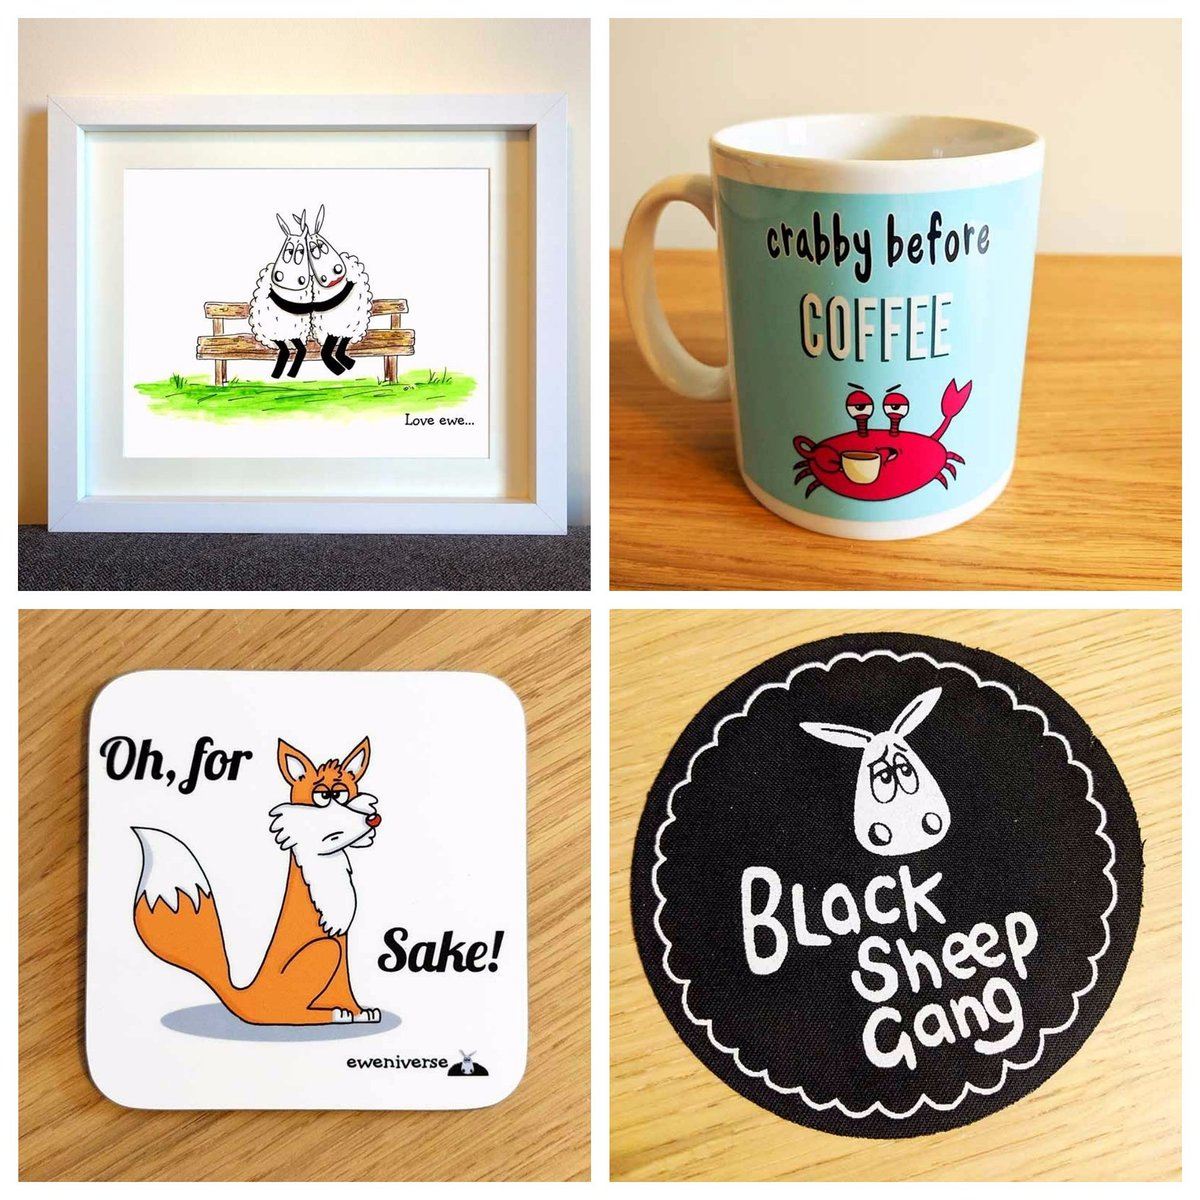 Some of the puntastic goodness at  http://www. eweniverse.com  &nbsp;   (currently reduced until Friday!)  #HandmadeHour #MidlandsHour #GlosHour #Sheep #OnlineCraft #CraftBuzz #etsyseller<br>http://pic.twitter.com/NXEO8sxo2c